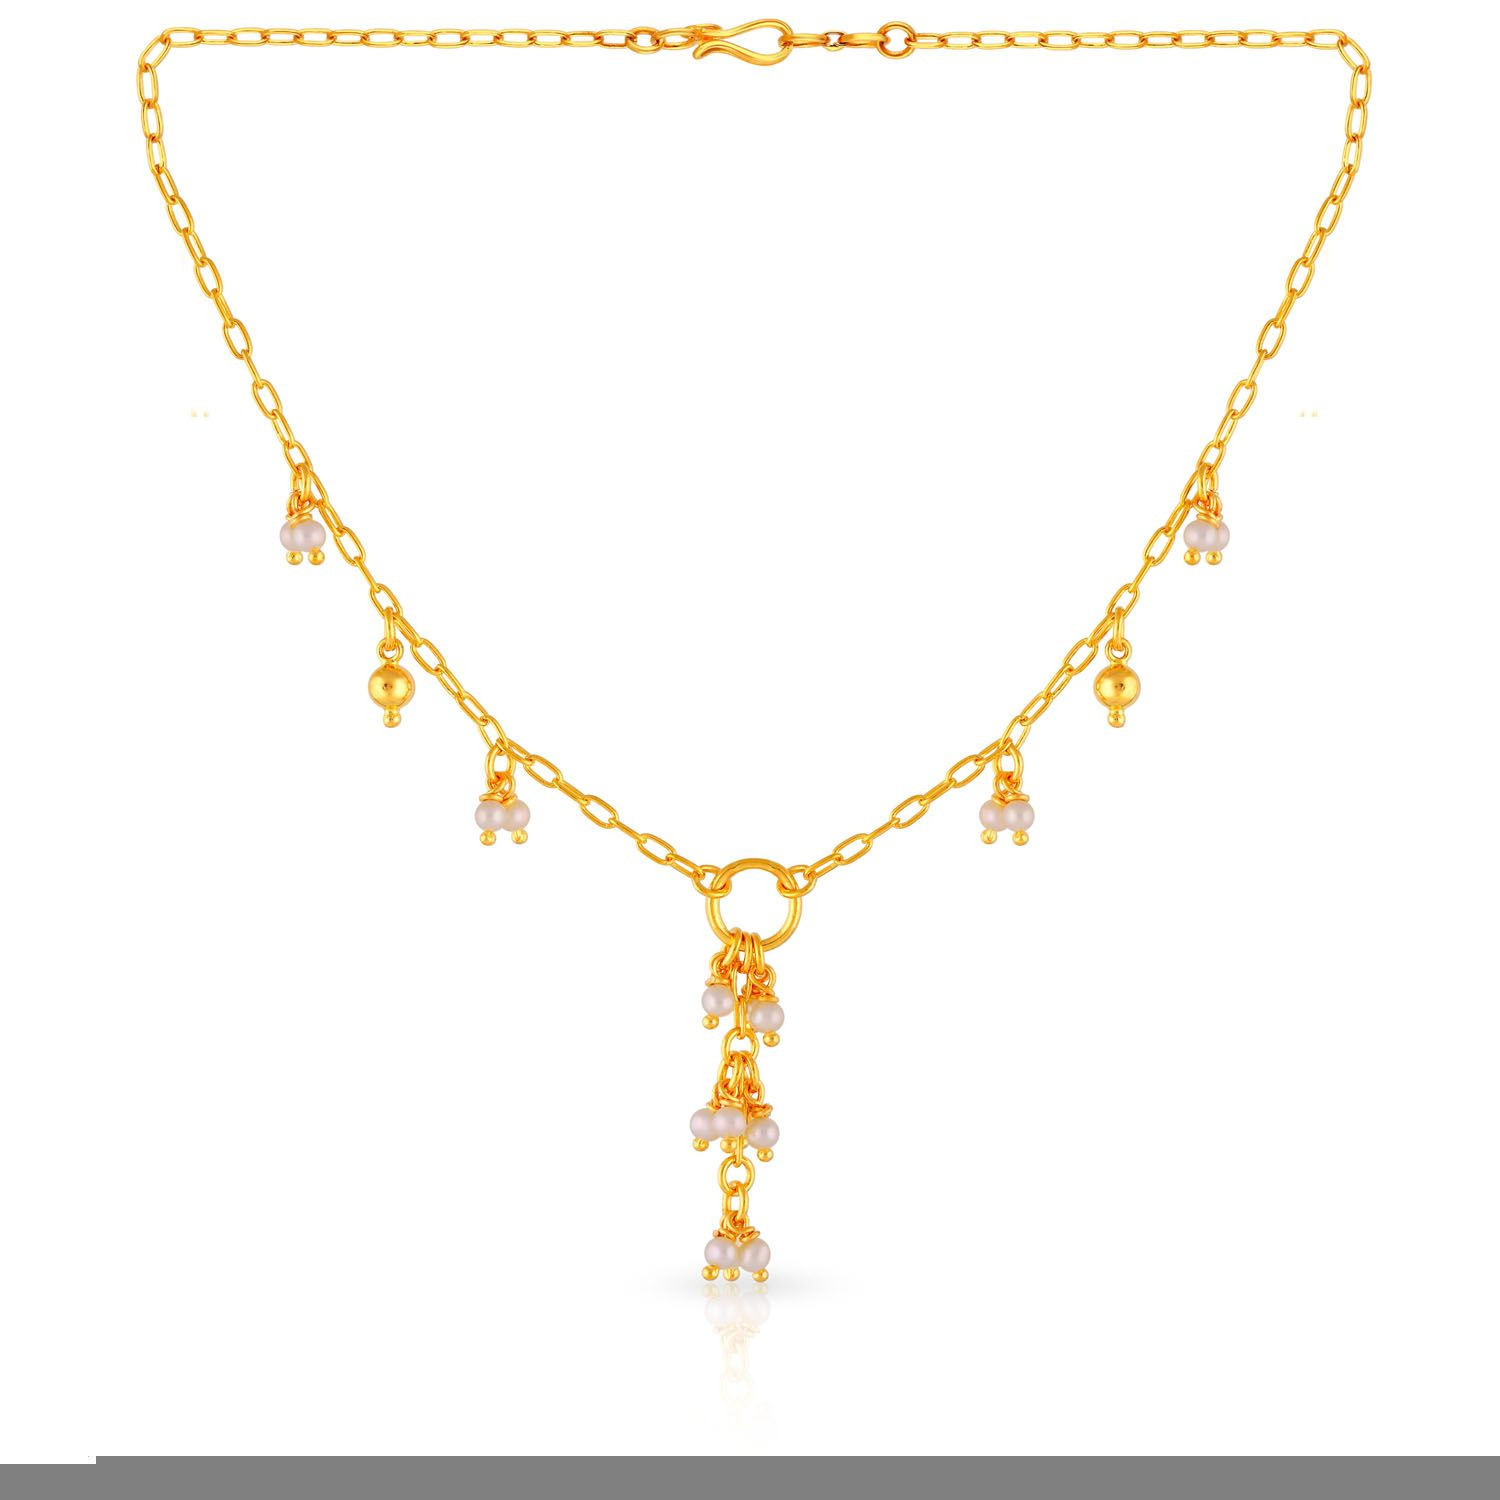 buy malabar gold necklace nkbfmcha004 for women online